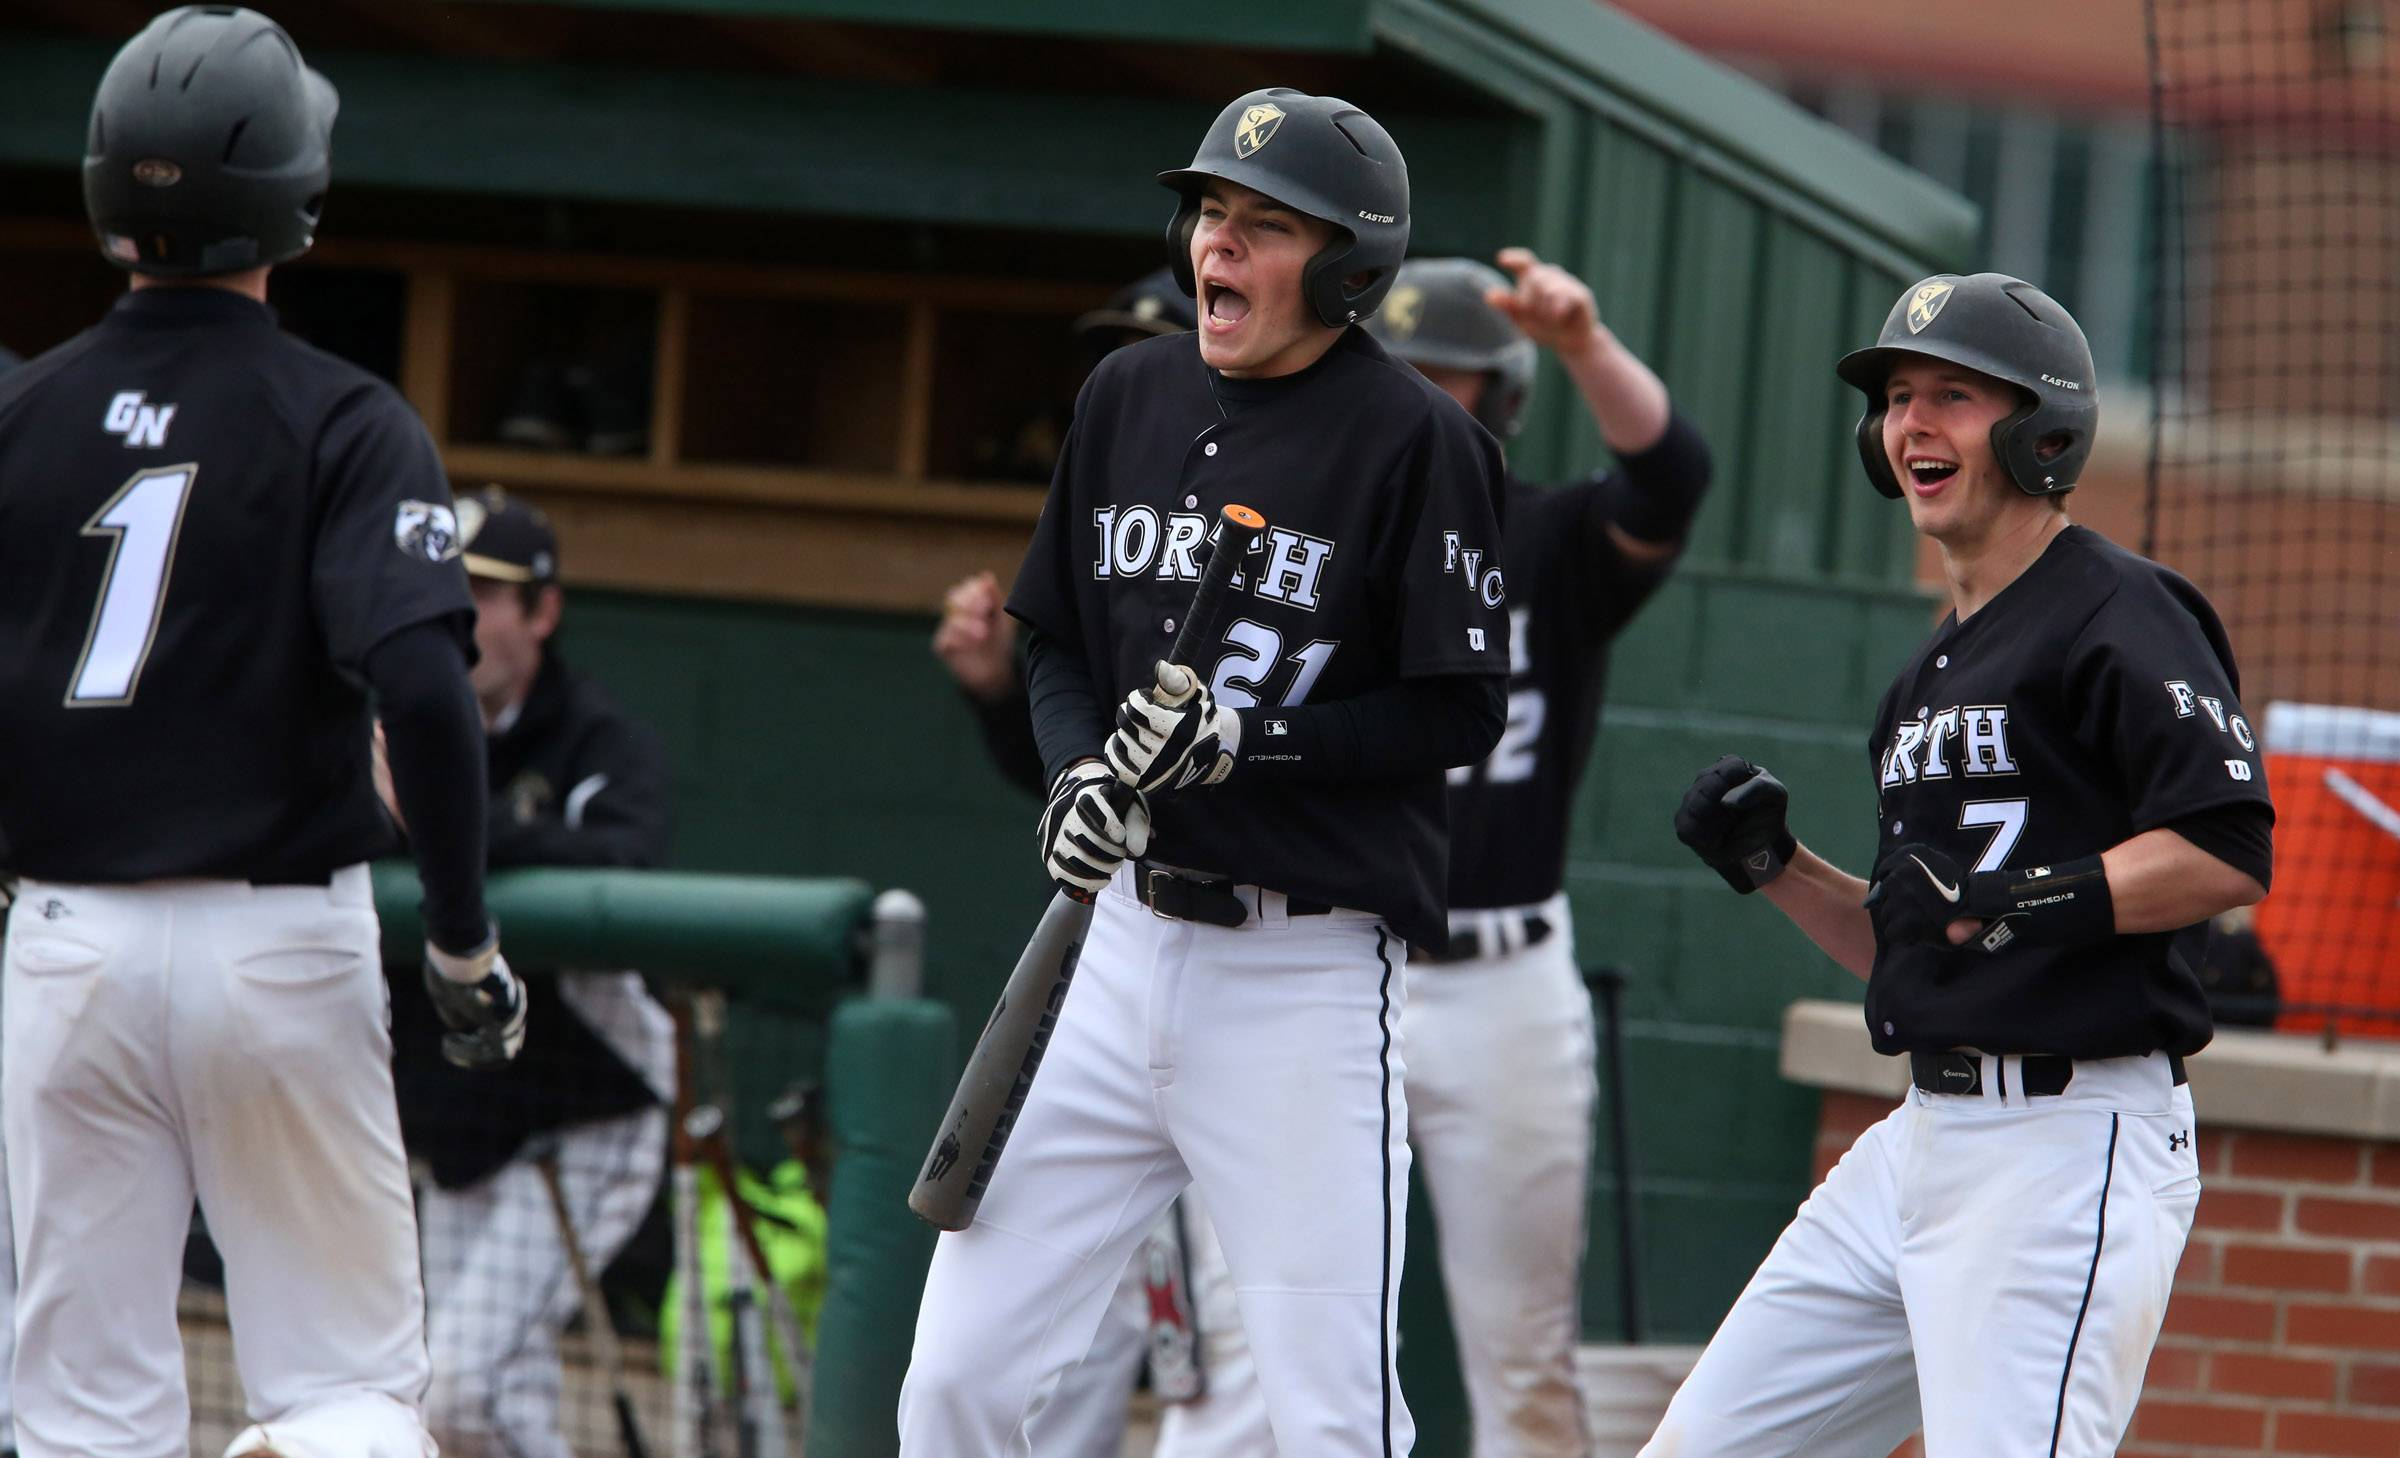 Grayslake North's Ryan Gross, center, and Jason Petrillo, right, celebrate as Sam Cremin, left, crosses the plate against Grayslake Central on Friday.